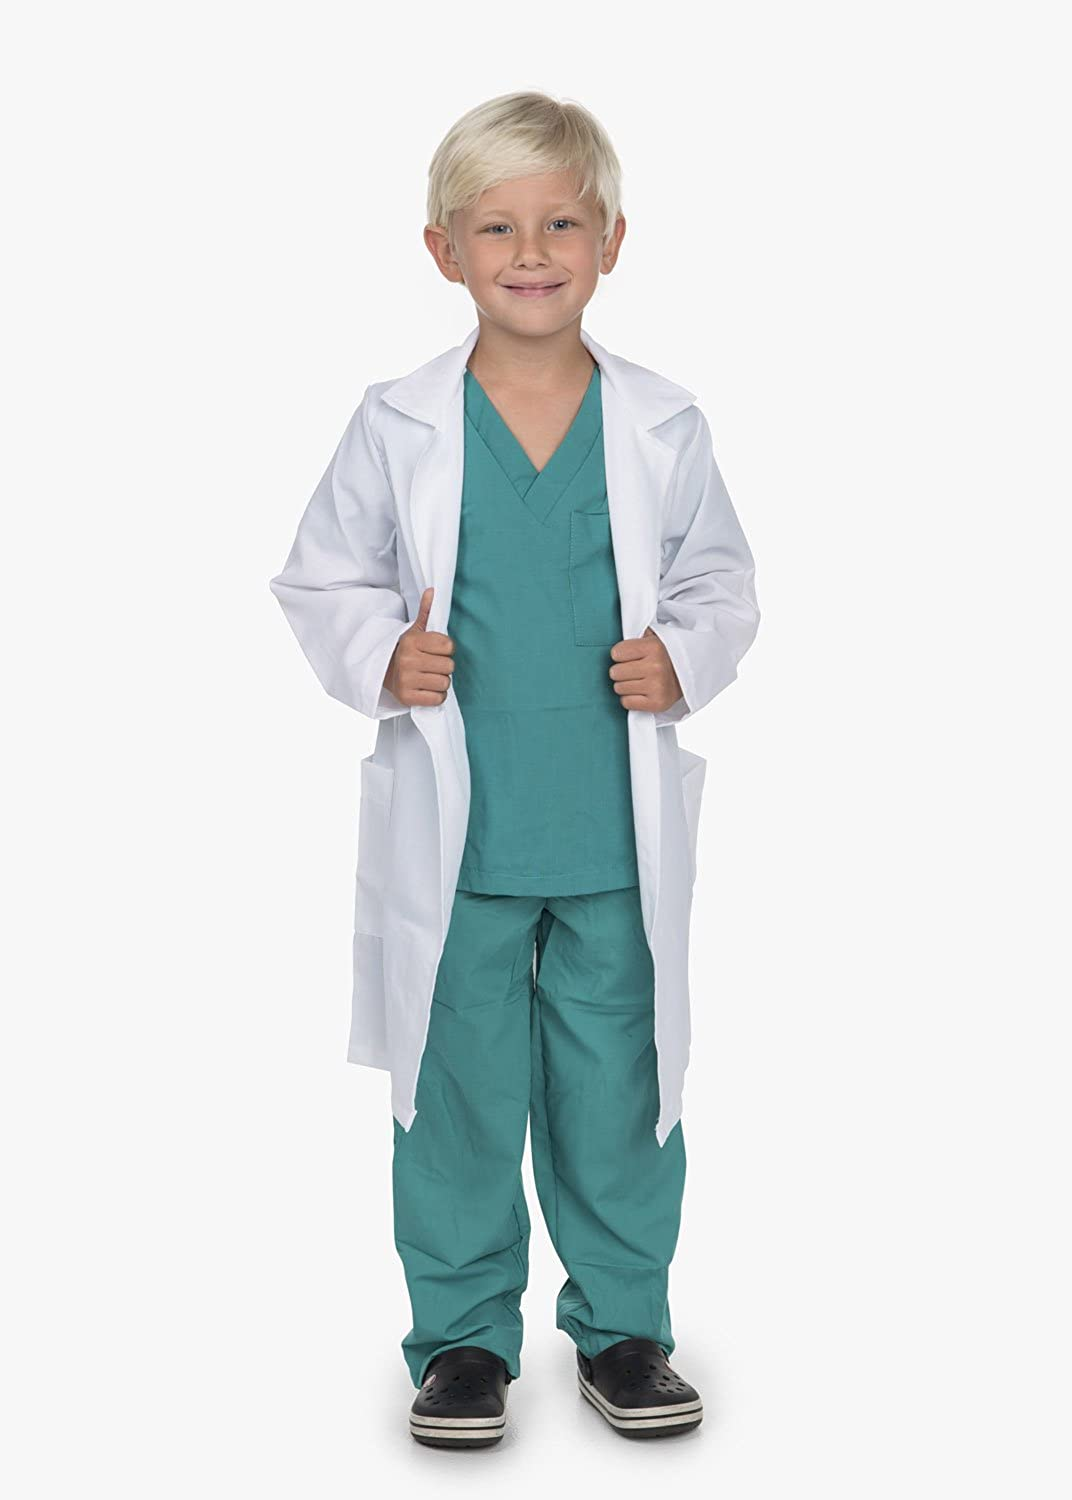 Doctor Surgical Scrubs Child Costume